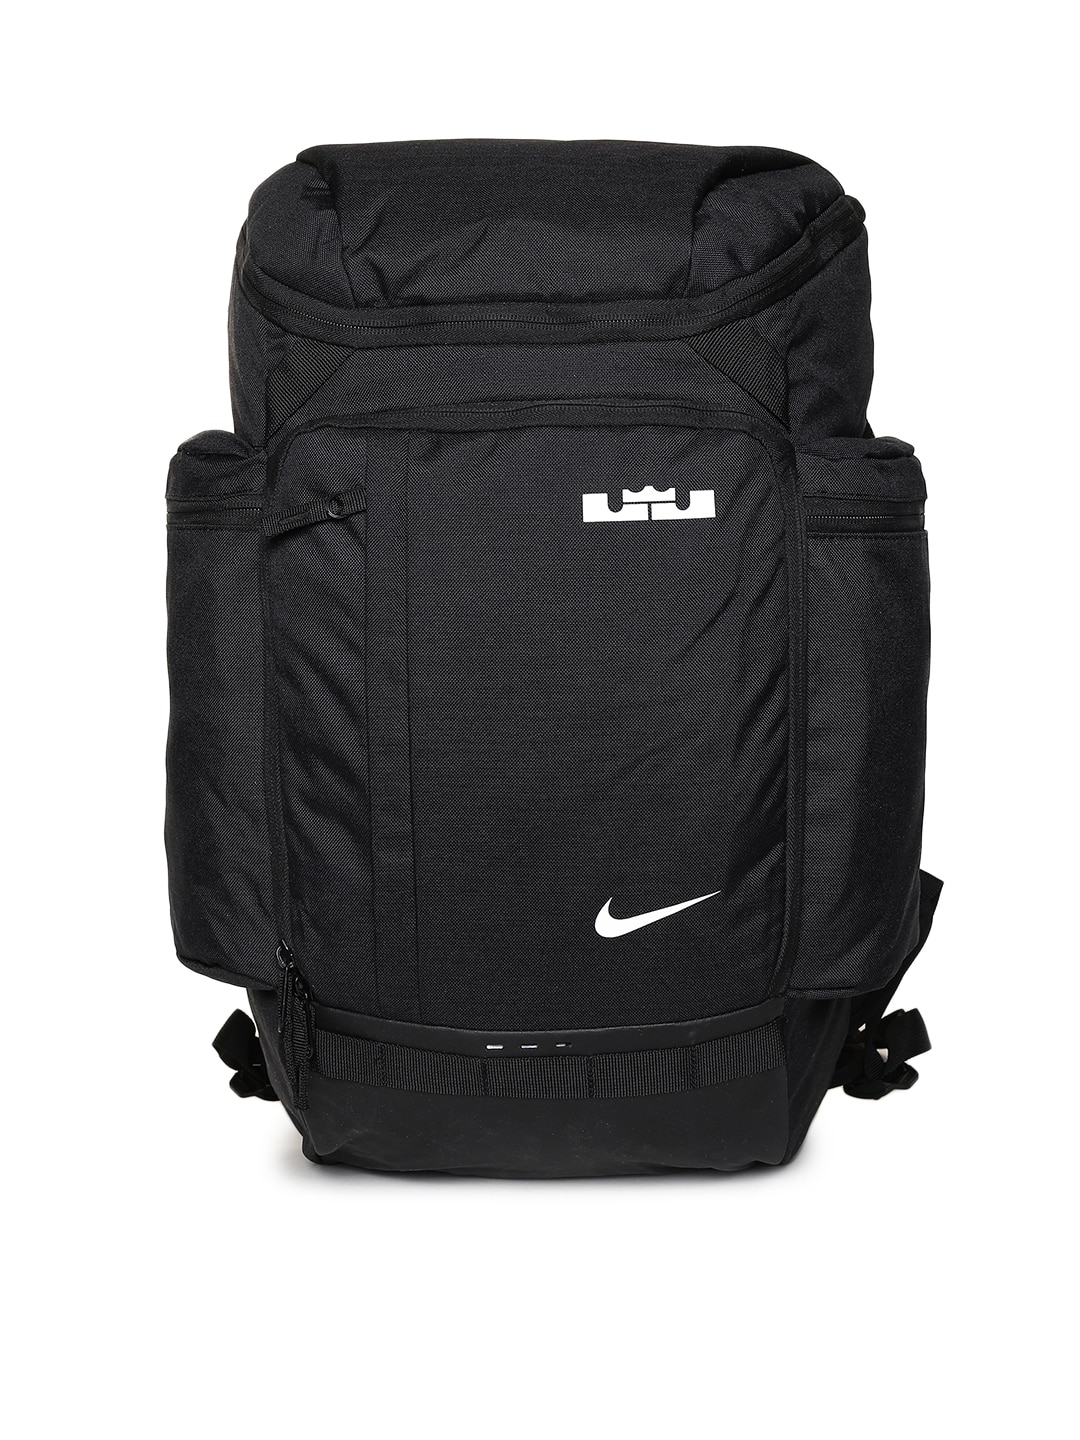 Nike Bags - Buy Nike Bag for Men d359fbdcb7f34